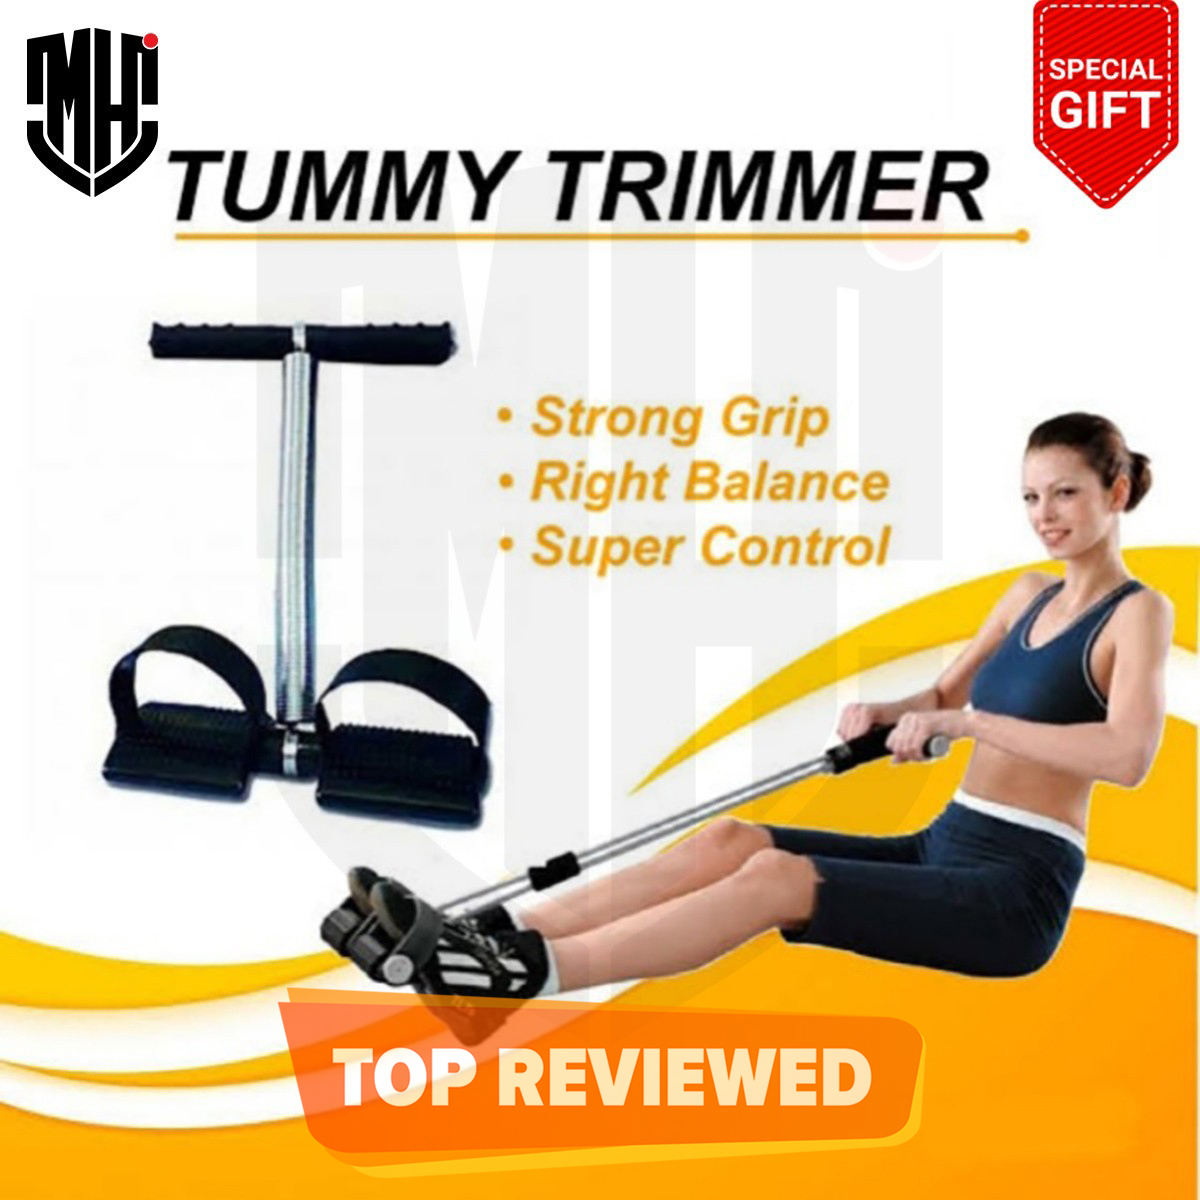 MHI Tummy Trimmer 10 Inch Single & Double Spring High Quality- Body Weight Loss Exercise Machine - Home Workout Gym for Men & Women - Tummy Trimmer For Girls - Tummy Trimmer For Women- Tumy Trimer - Tummy Trimmer For Men - Tumy Slimmer